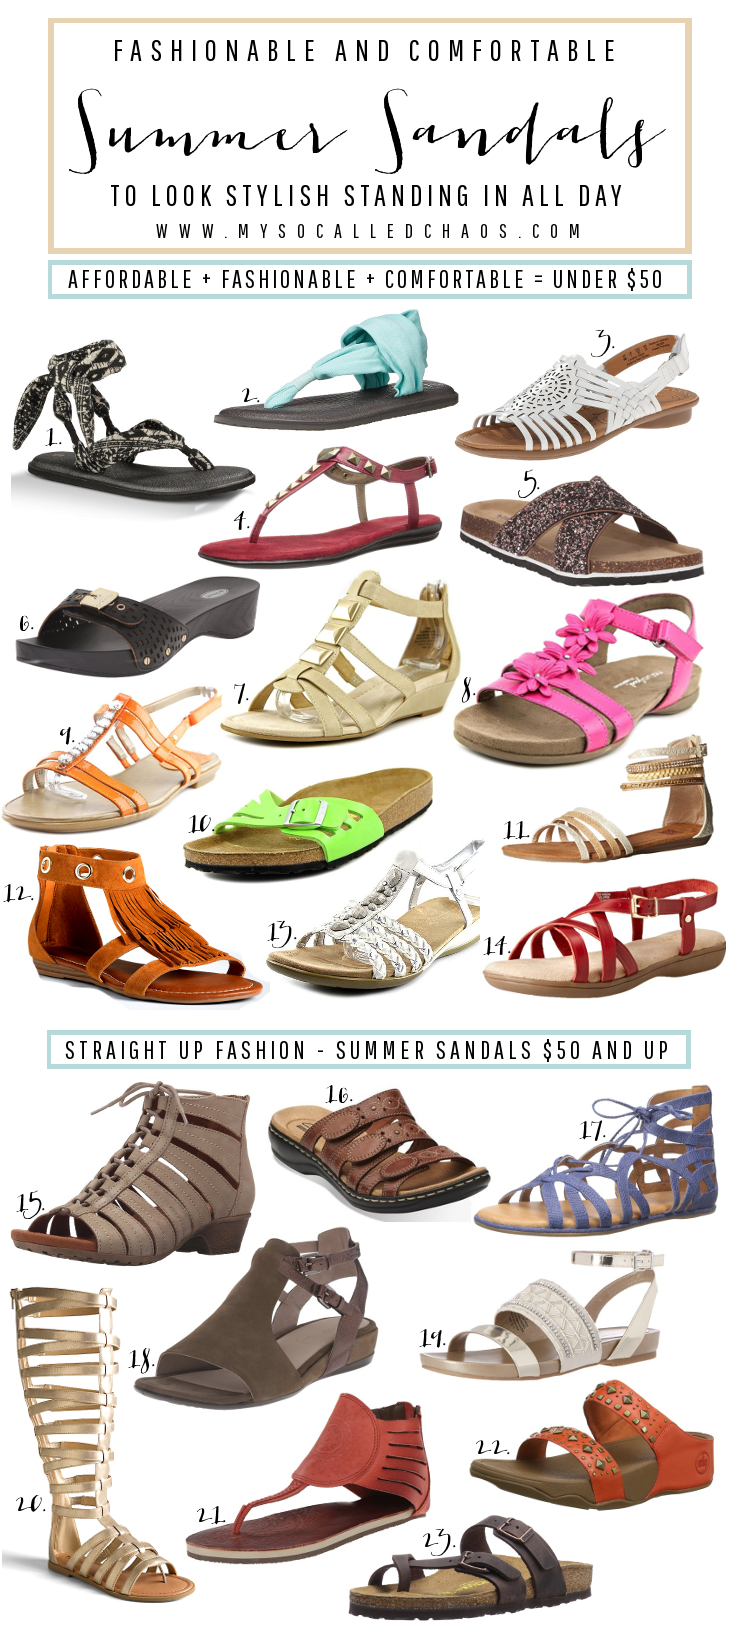 The Best Summer Sandals for Fashionable and Comfortable Shoes